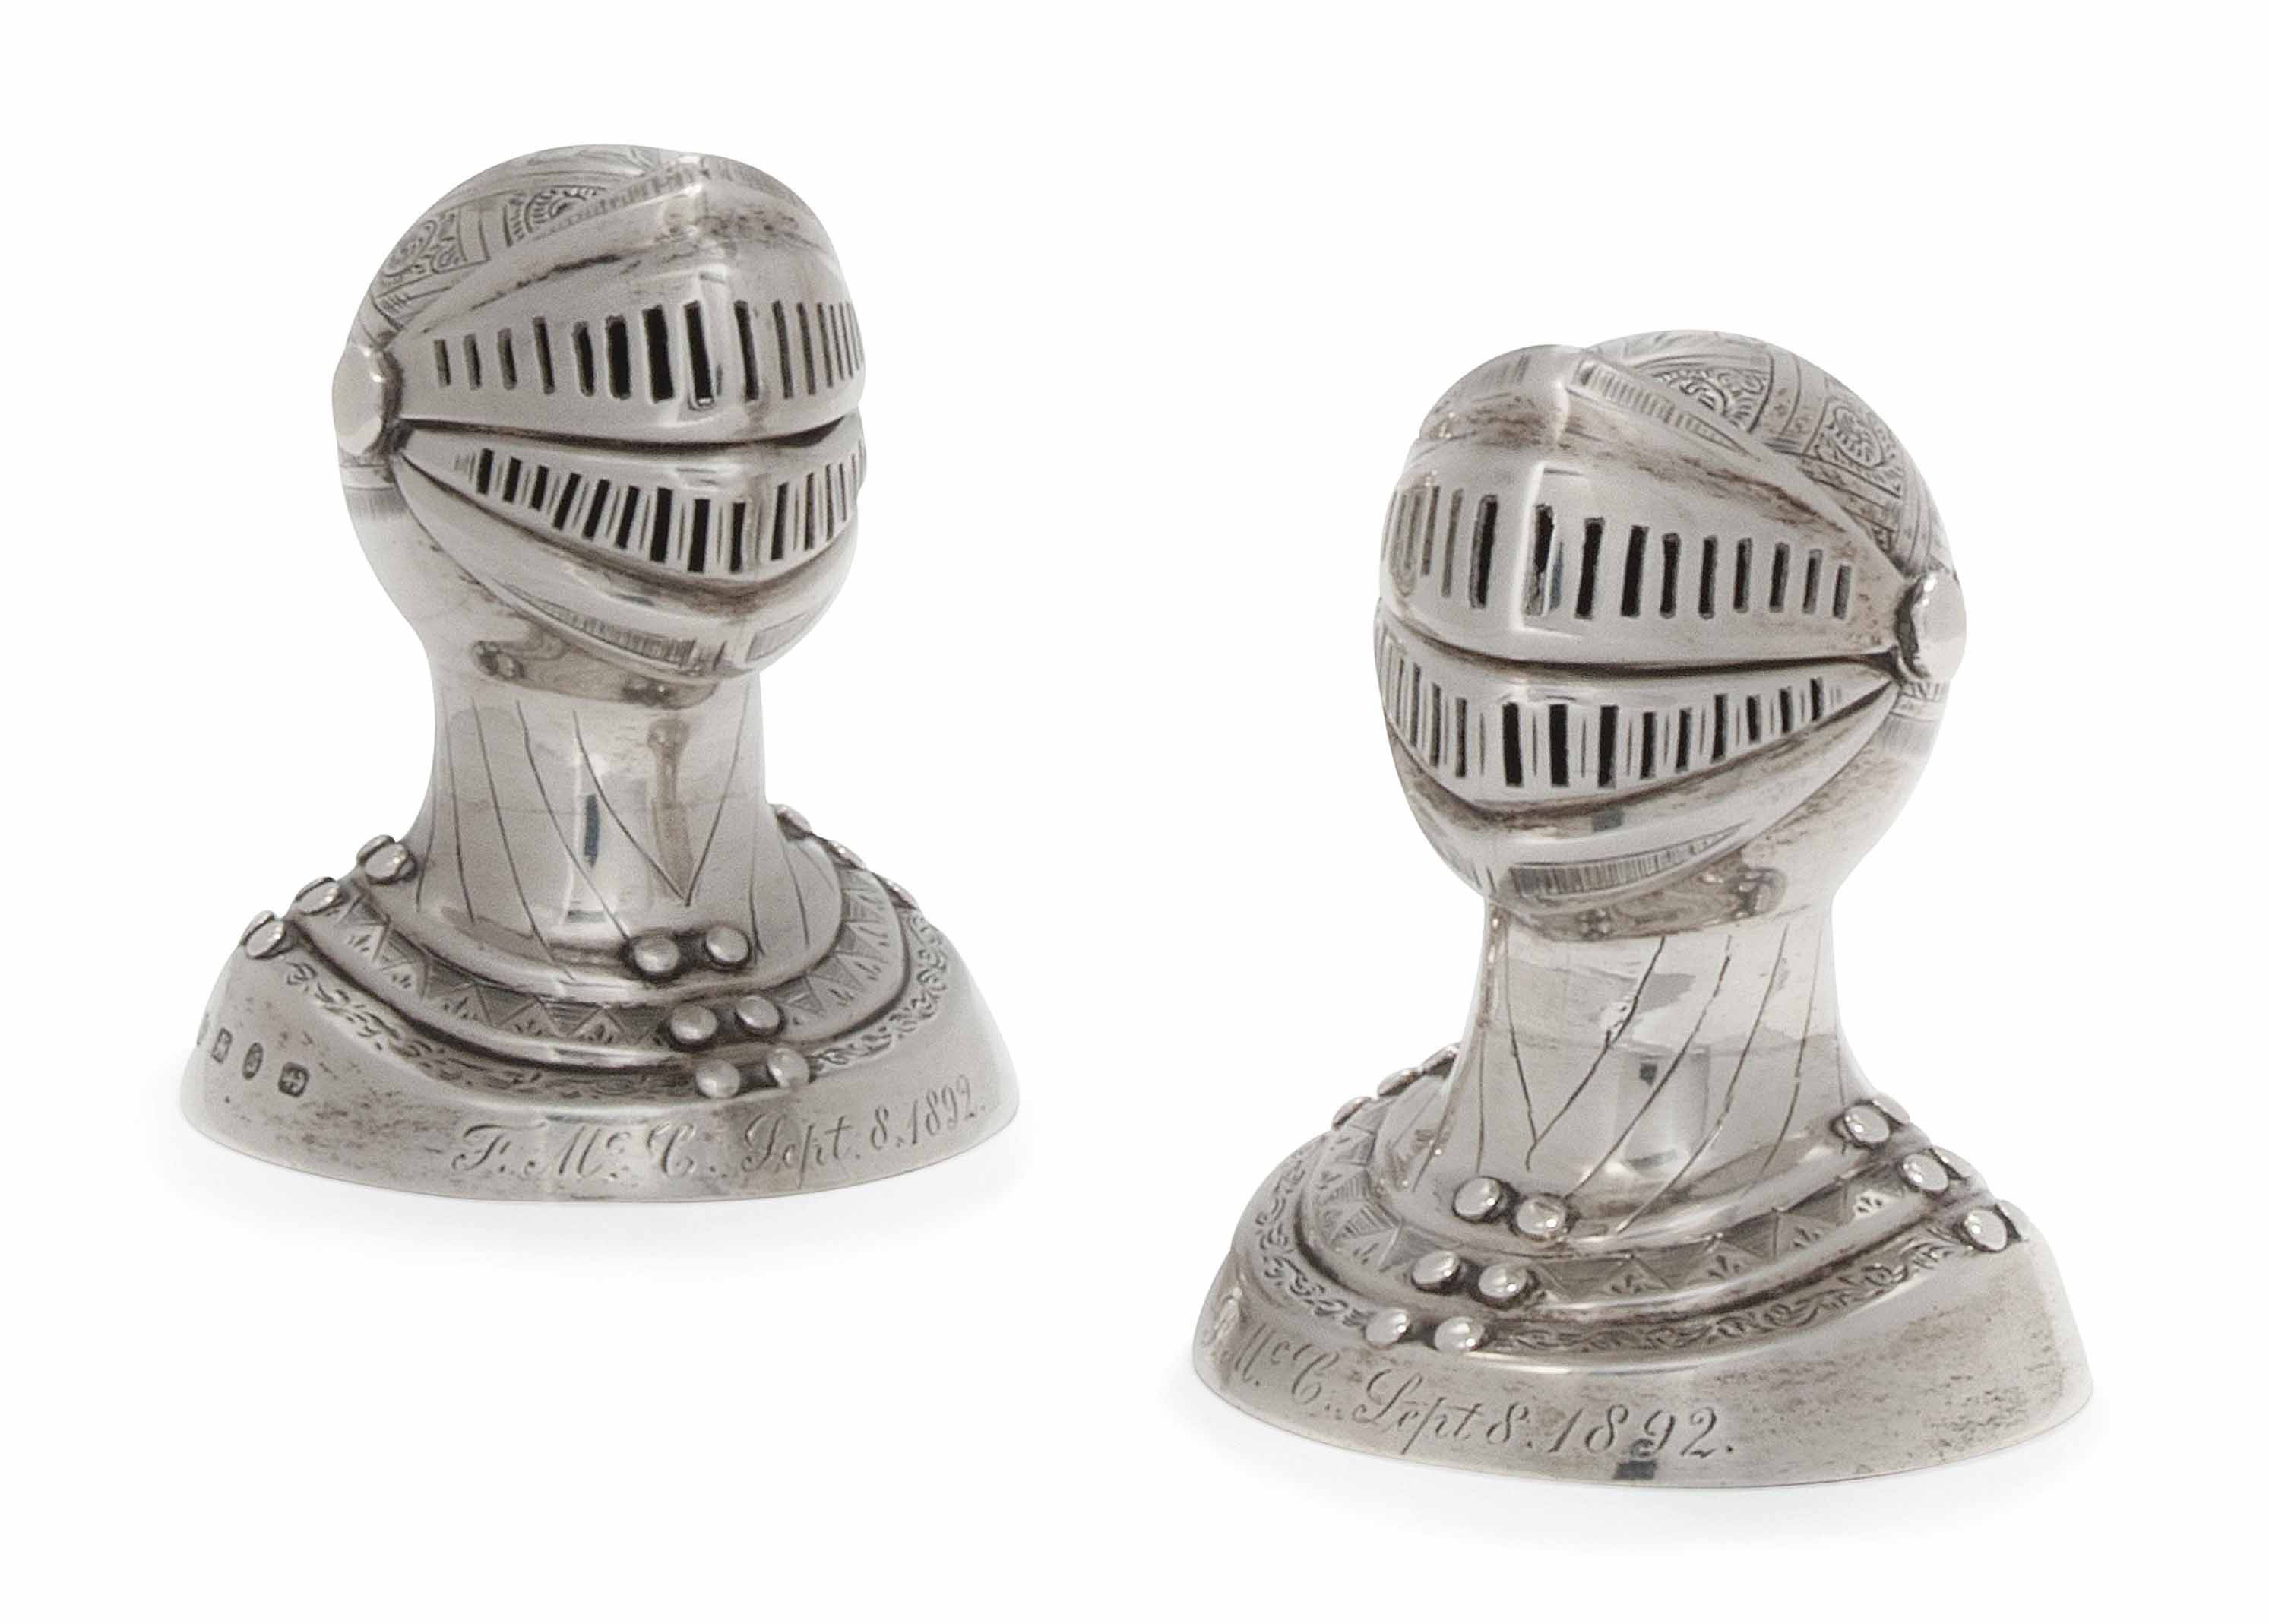 A PAIR OF VICTORIAN NOVELTY SILVER CONDIMENTS IN THE FORM OF VISORED HELMETS